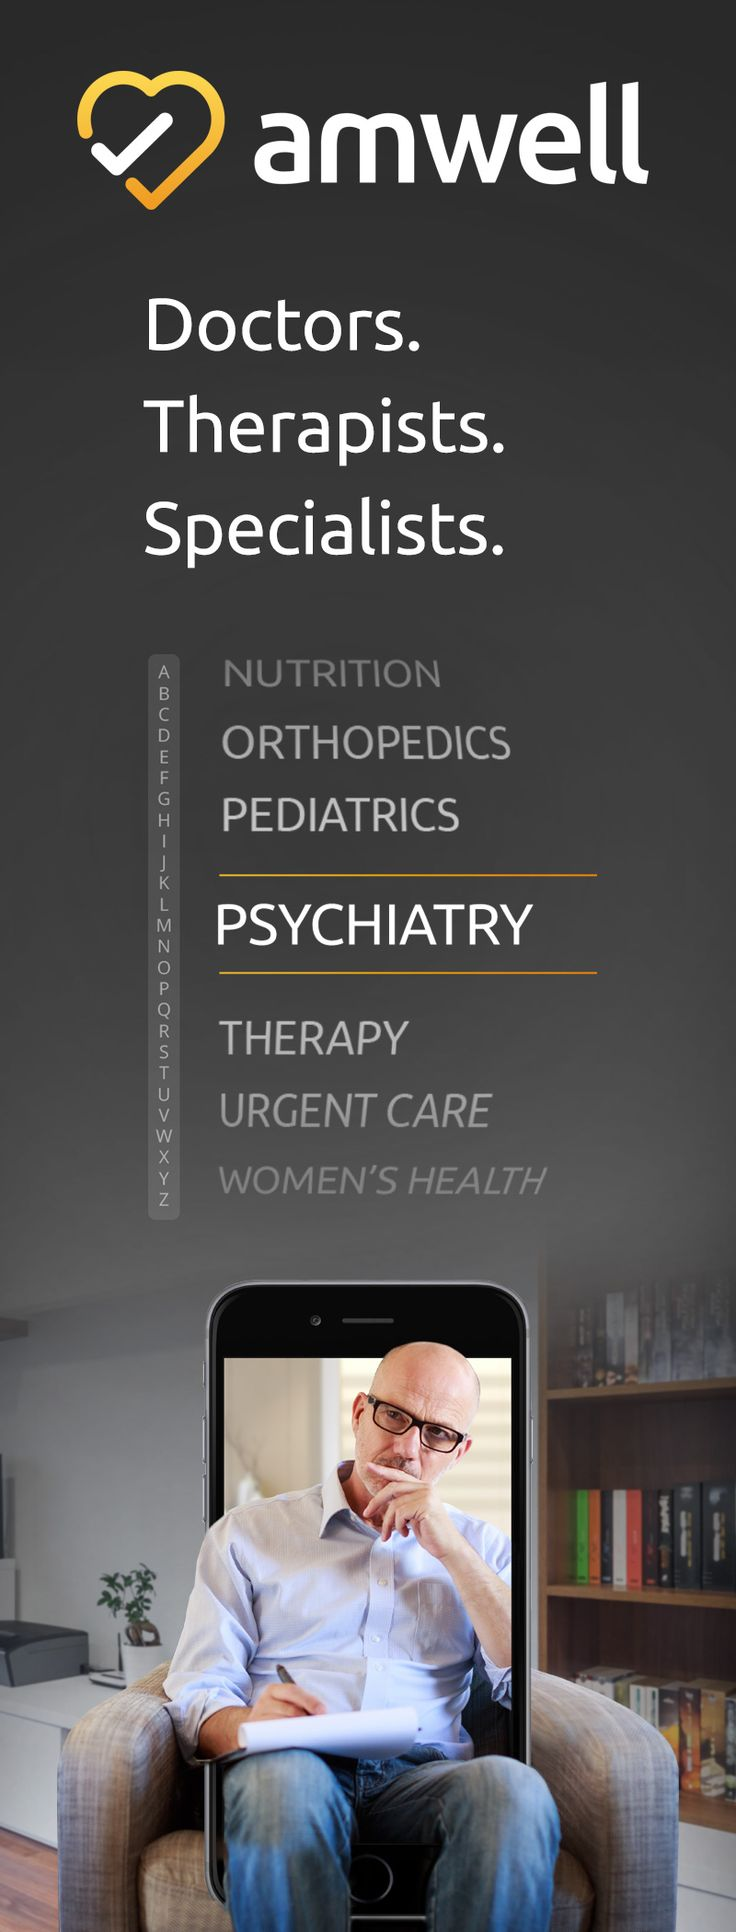 Connect with Doctors, Therapists, and Specialists over mobile video in just minutes. Install the Amwell app and access healthcare from anywhere, at any time.   https://5zp-6.tlnk.io/serve?action=click&publisher_id=188601&site_id=49870&agency_id=1910&sub_campaign=Pinterest&sub_ad=100.5p&site_id_android=49602